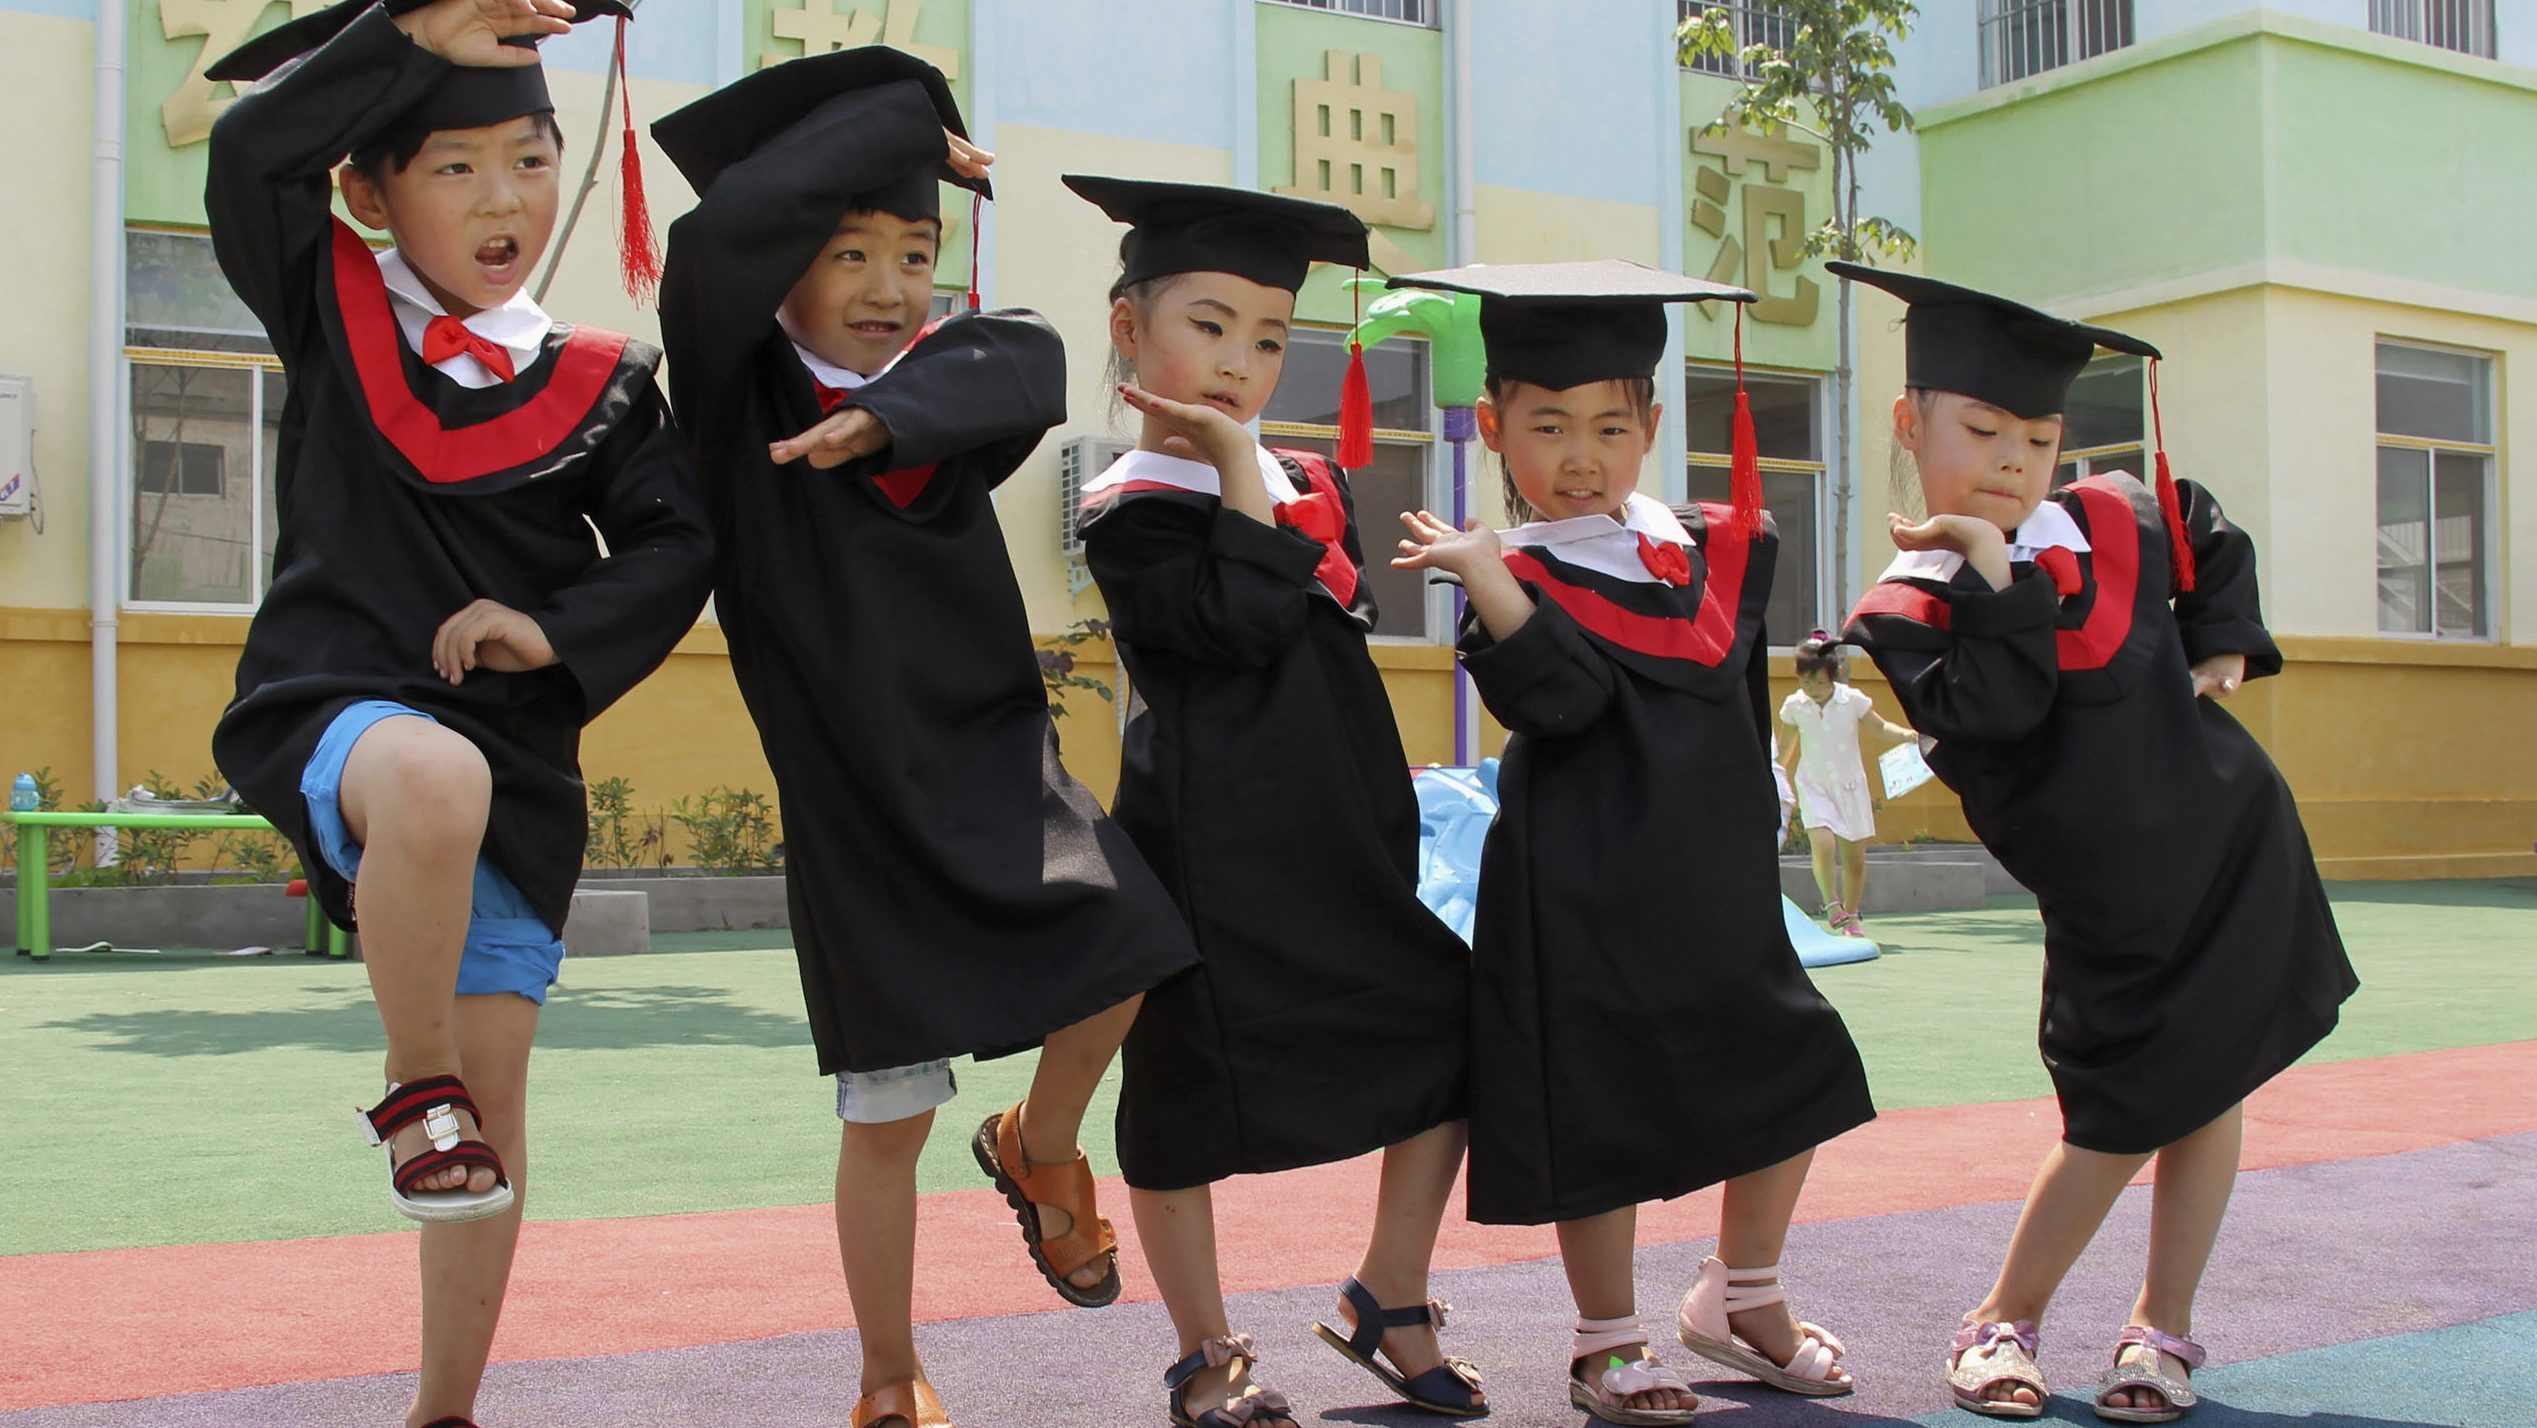 Chinese parents are using Peppa Pig to prepare their toddlers for the Ivy League